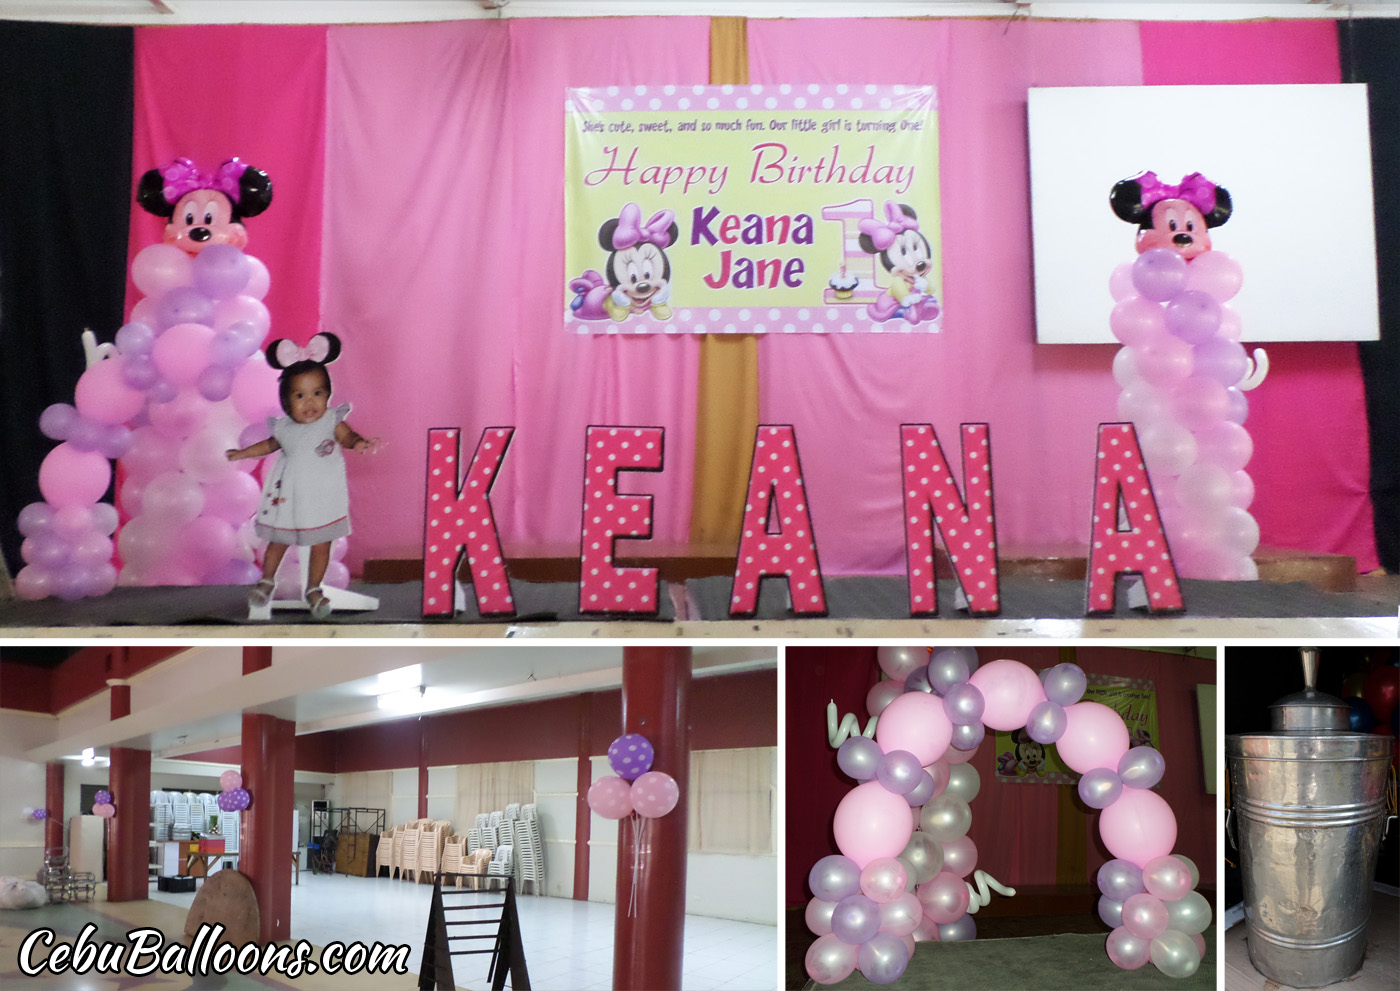 Minnie Mouse Birthday Decoration For Keana Jane At Cebu Chamber Of Commerce